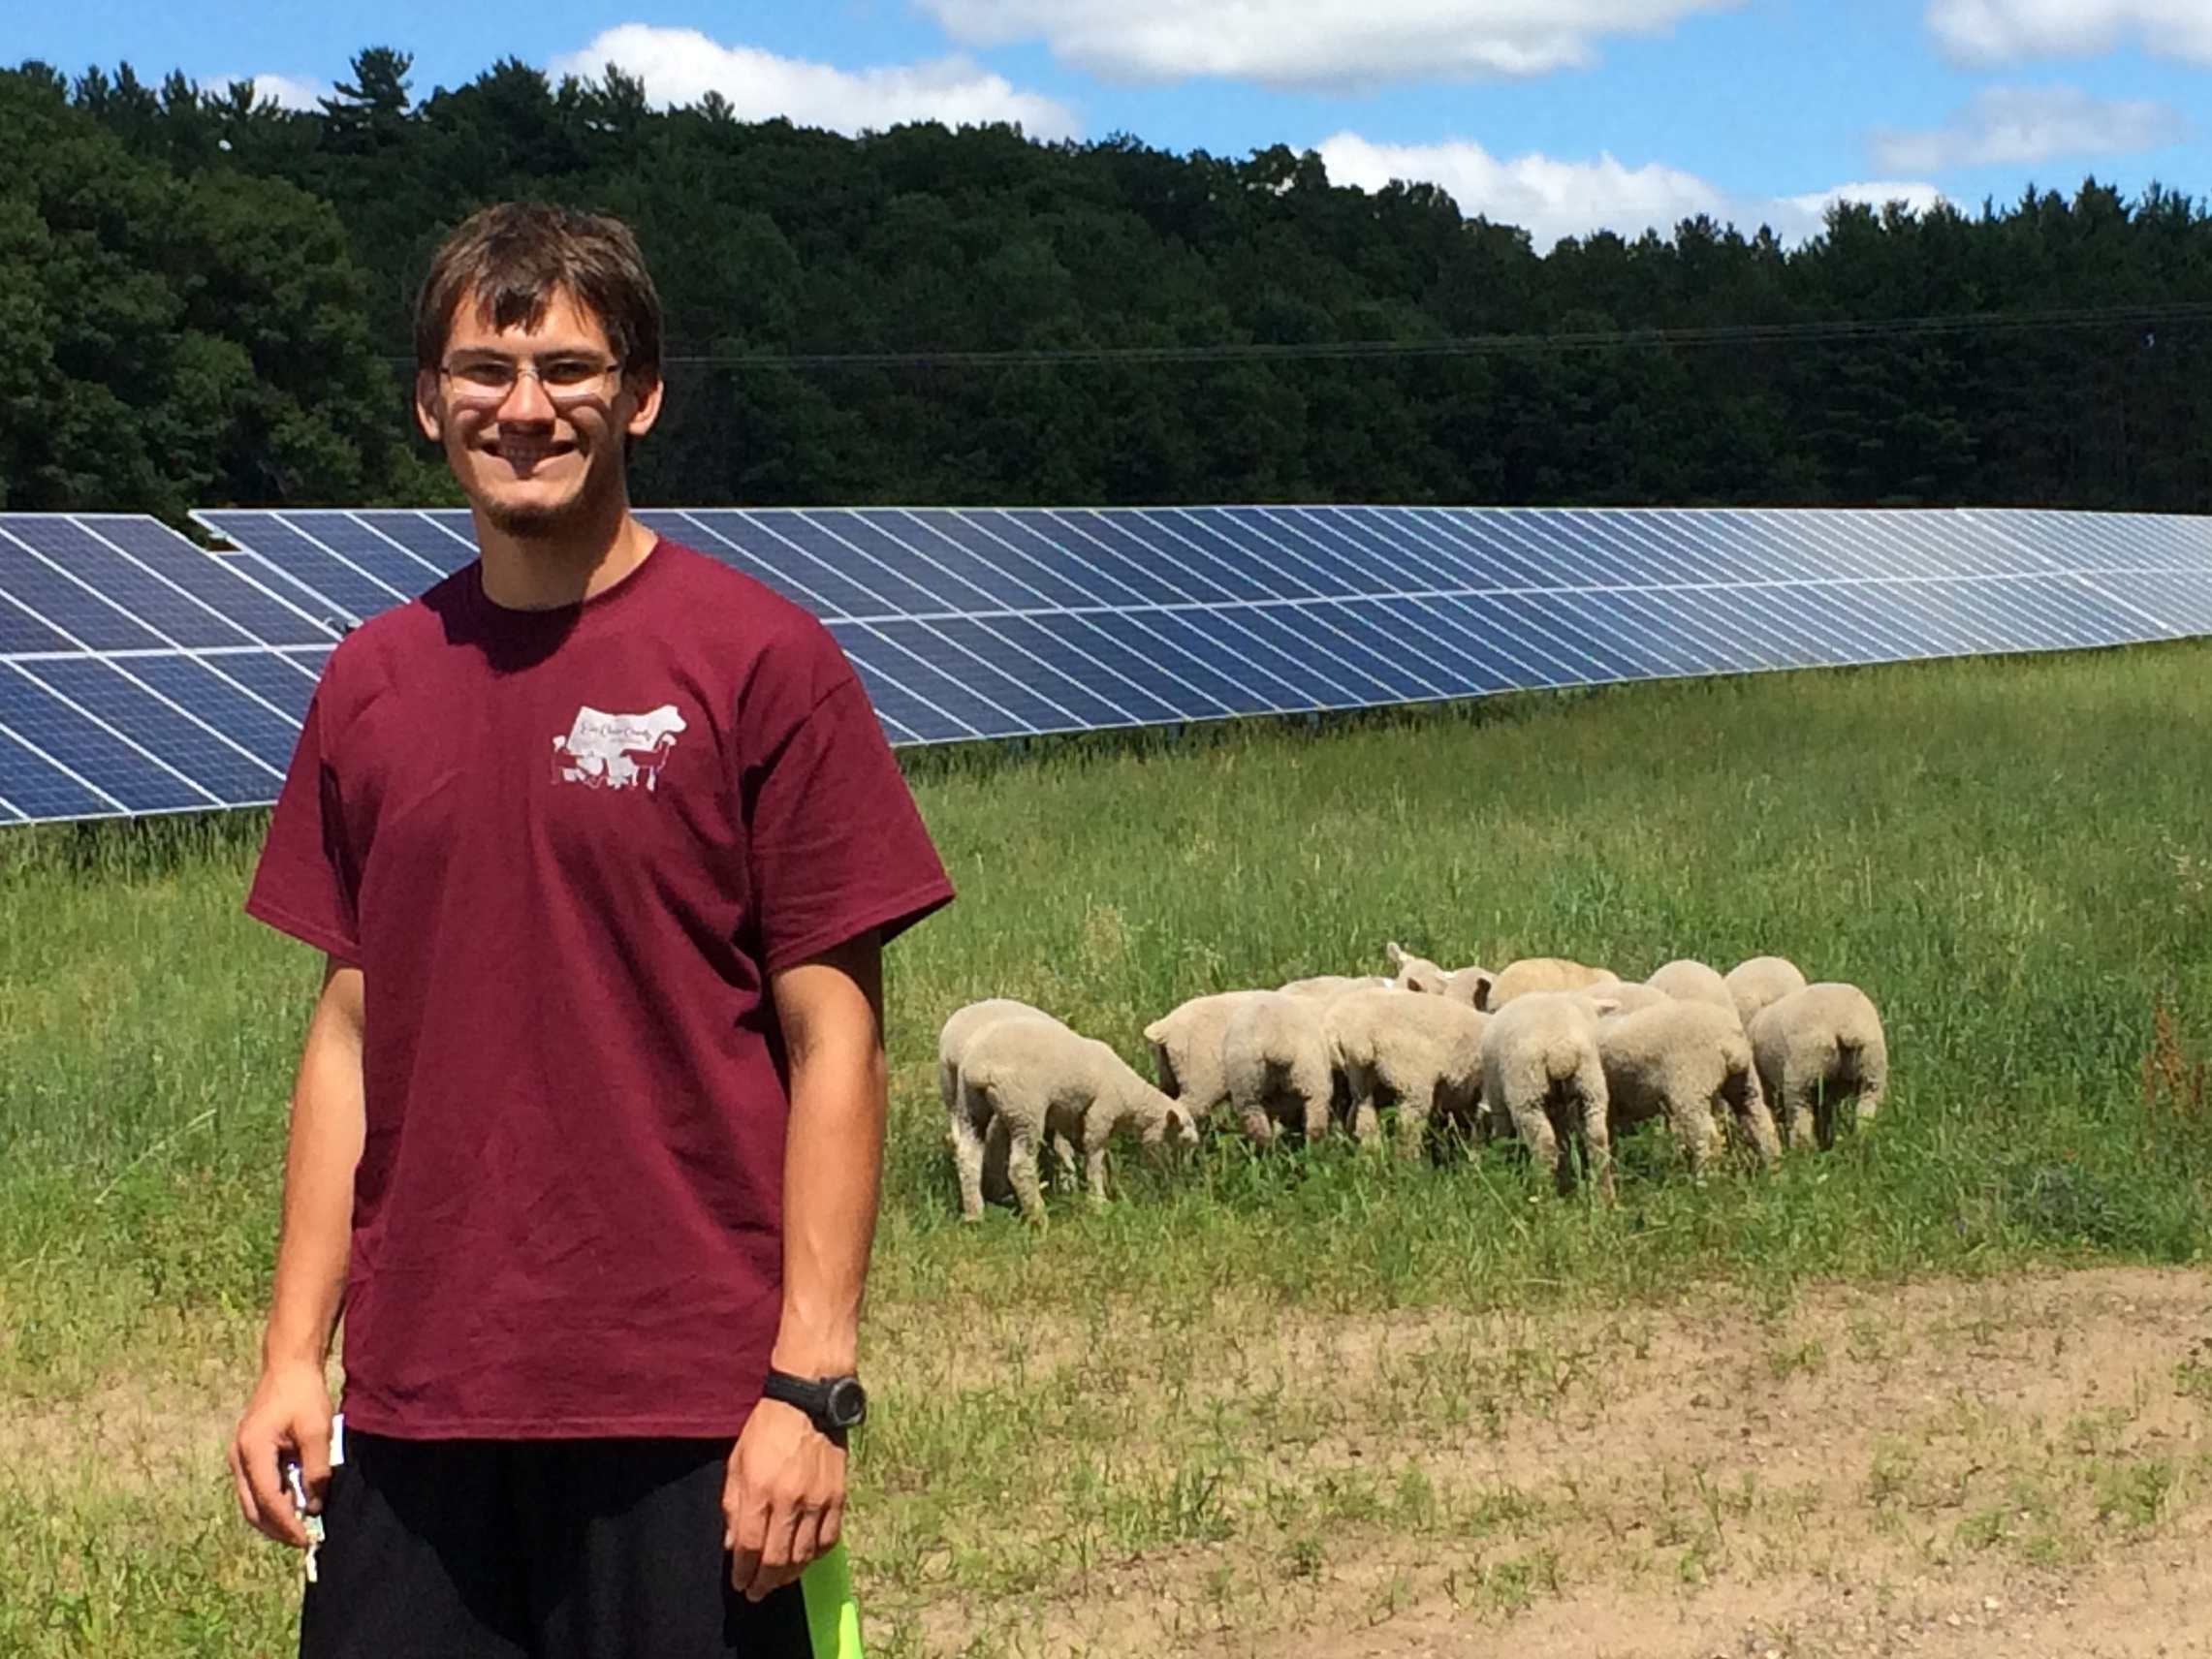 Eau Claire - DylanK with sheep and solar panels.JPG